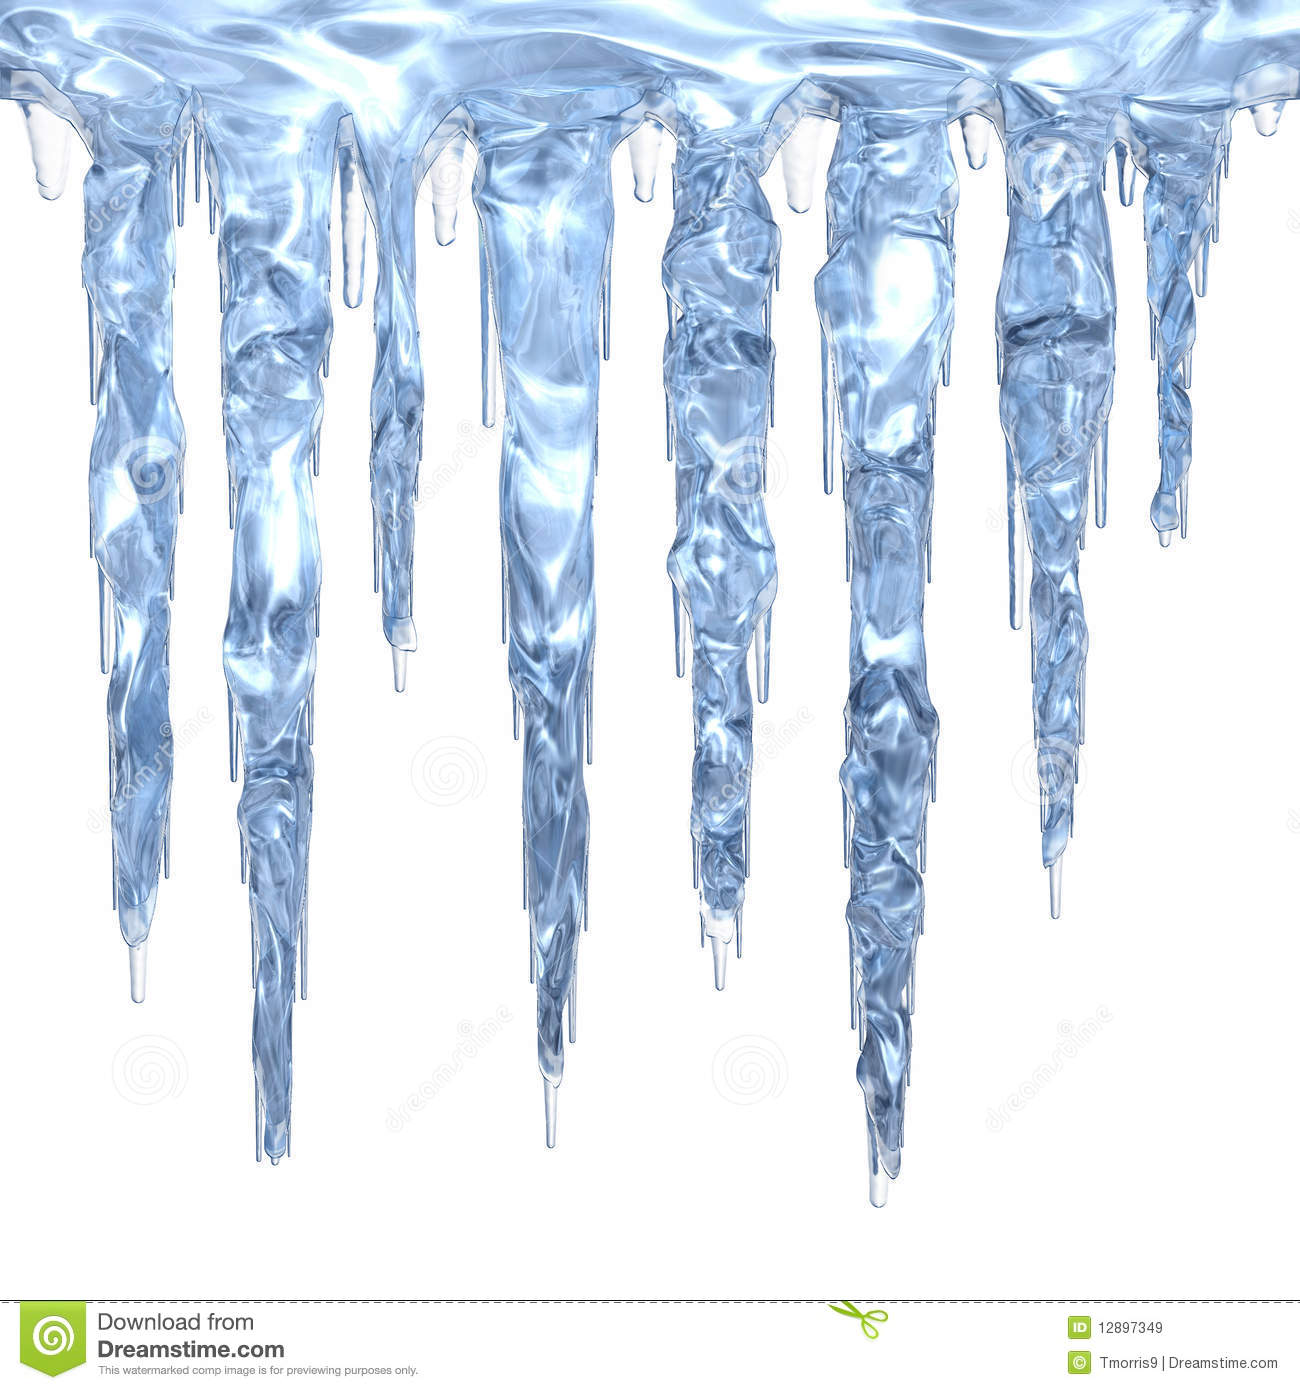 Icicles clipart ice sickle. Icicle